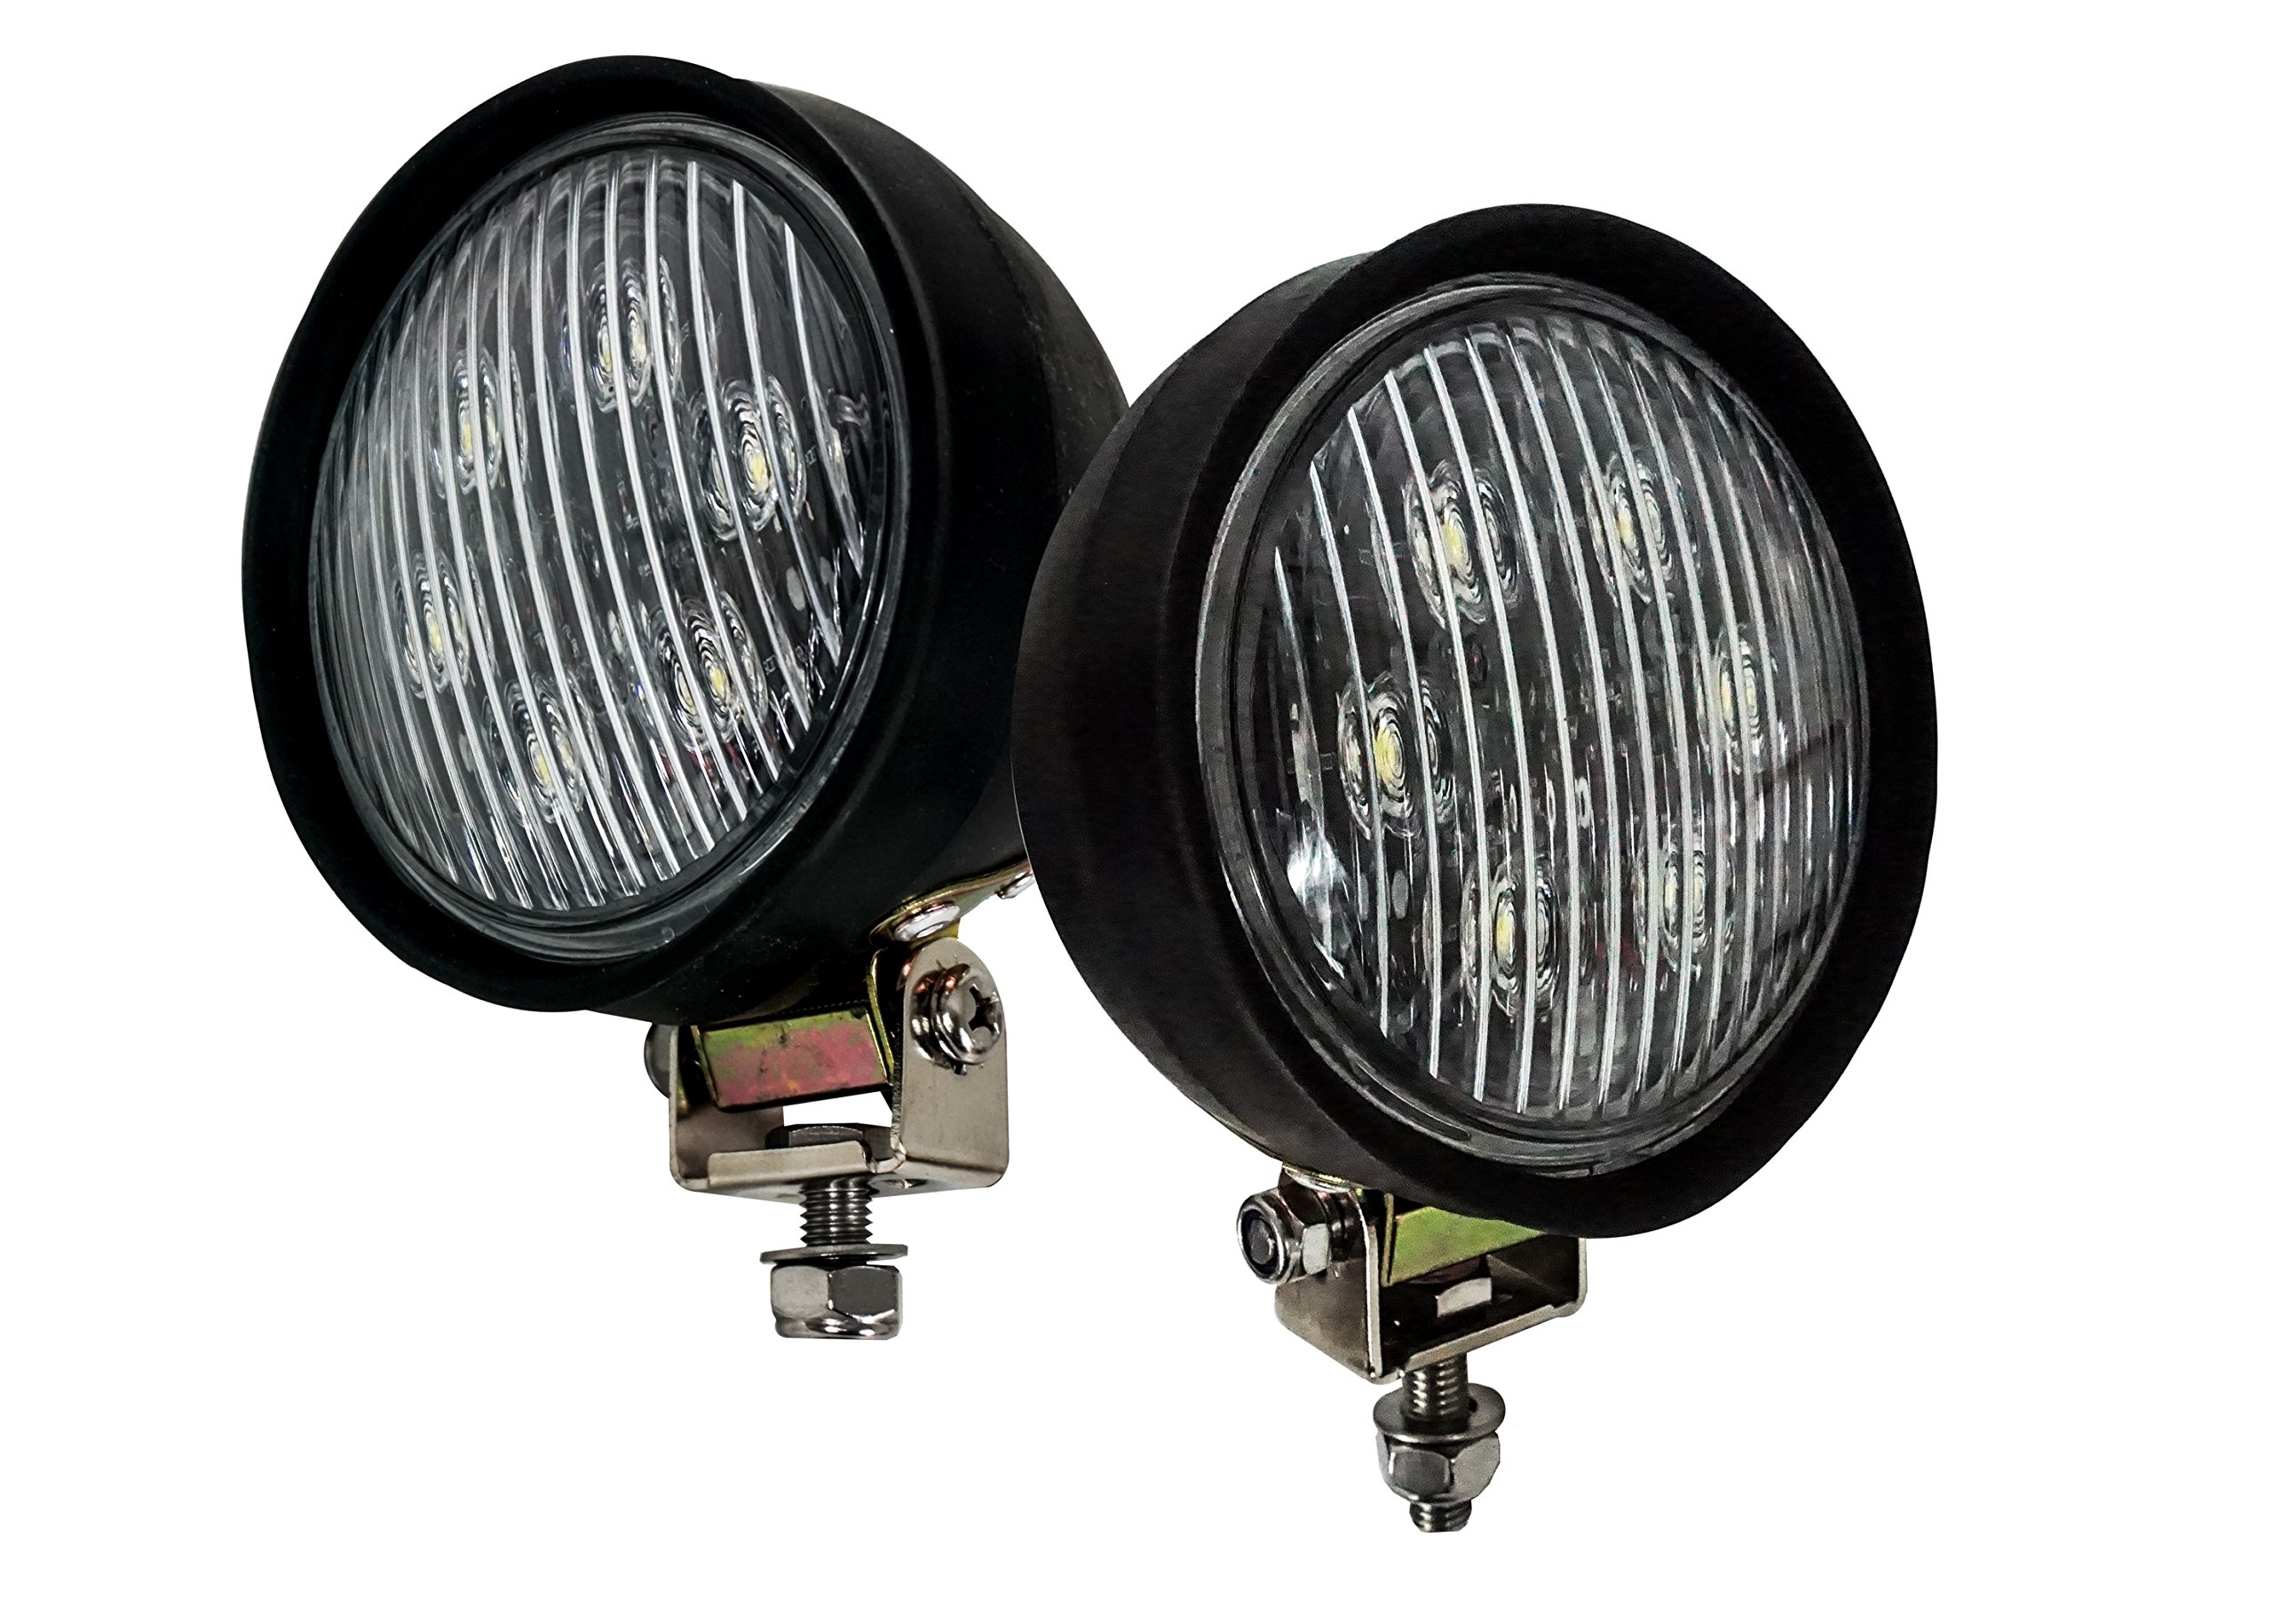 1 Pair OZ-USA H7606 LED Work Light Forklift Tractor Head Fender PAR 36 4411 Tow Truck Heavy Equipment by OZ-USA